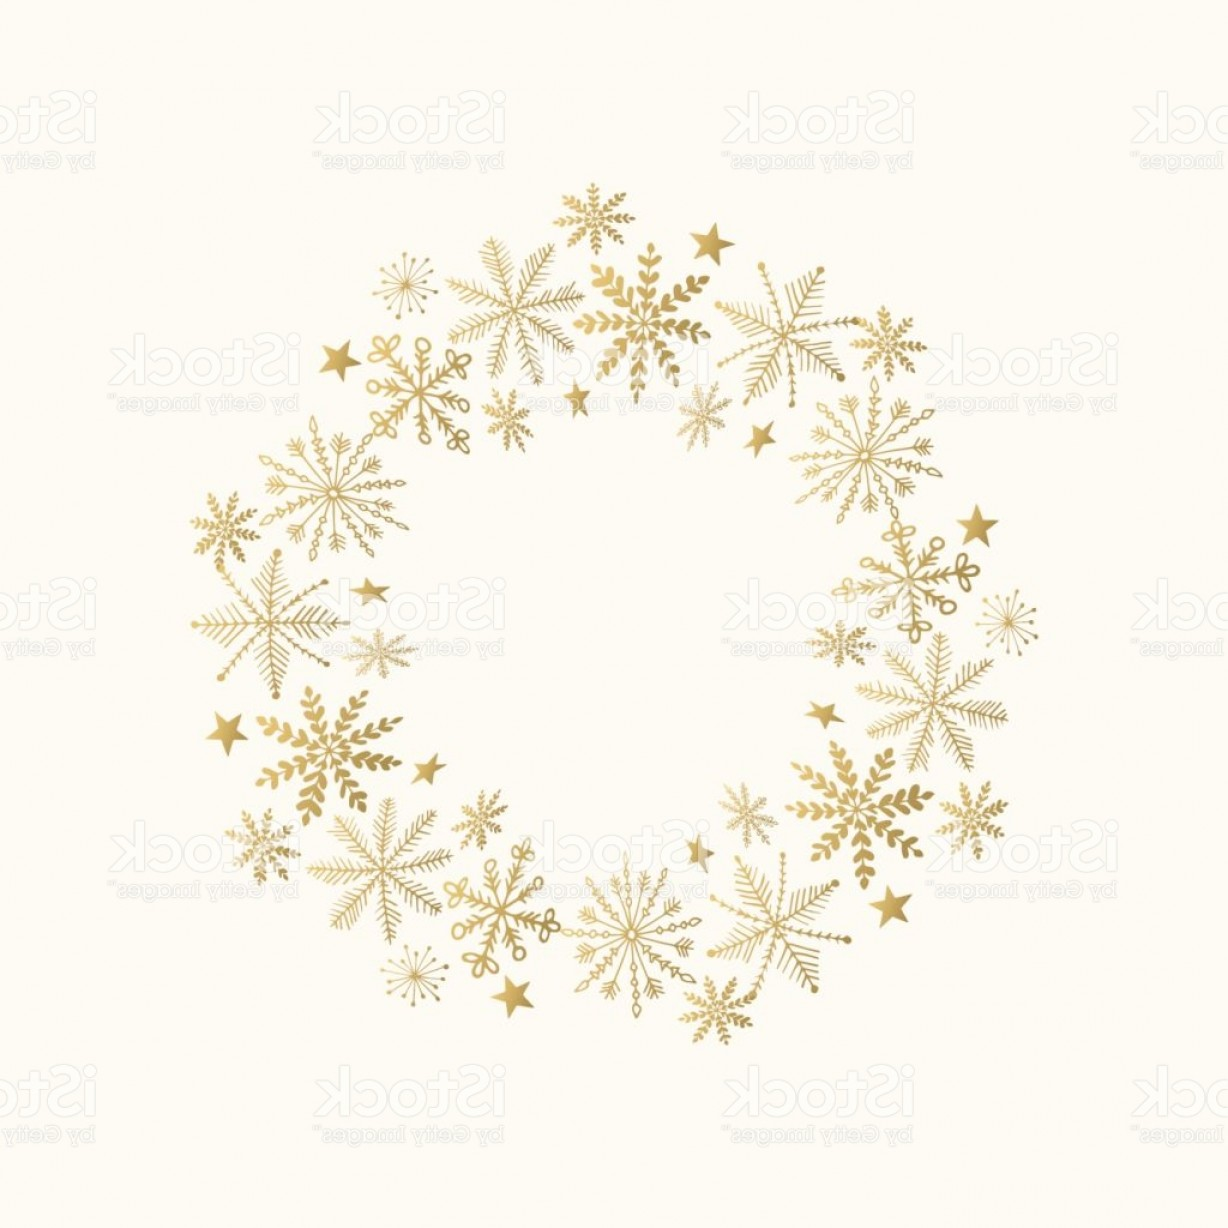 Vector Snowflake Wreath: Holiday Wreath With Snowflakes And Stars Hand Drawn Golden Frame Vector Illustration Gm